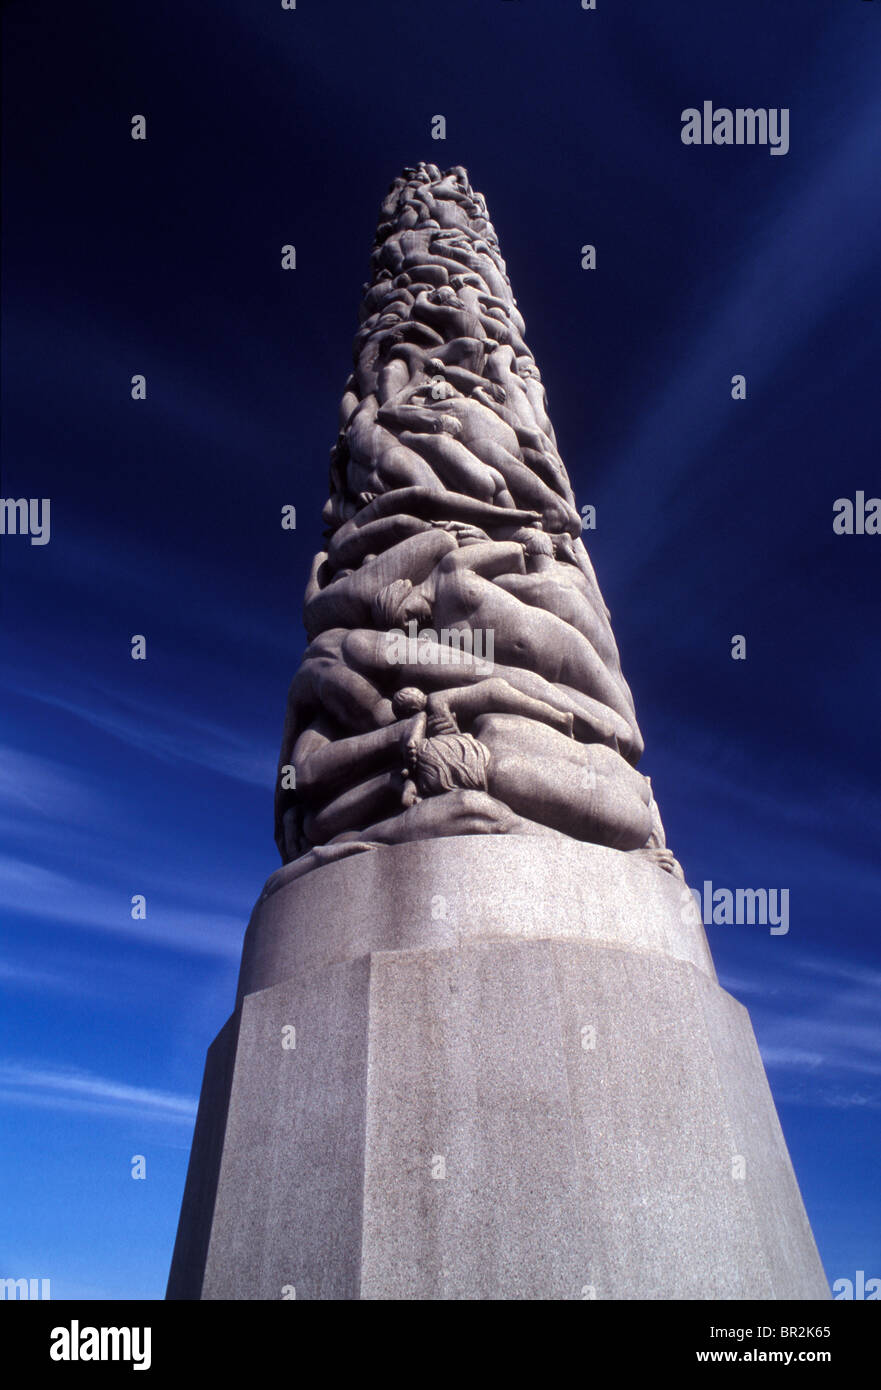 Vigeland park in Oslo, Norway - Stock Image